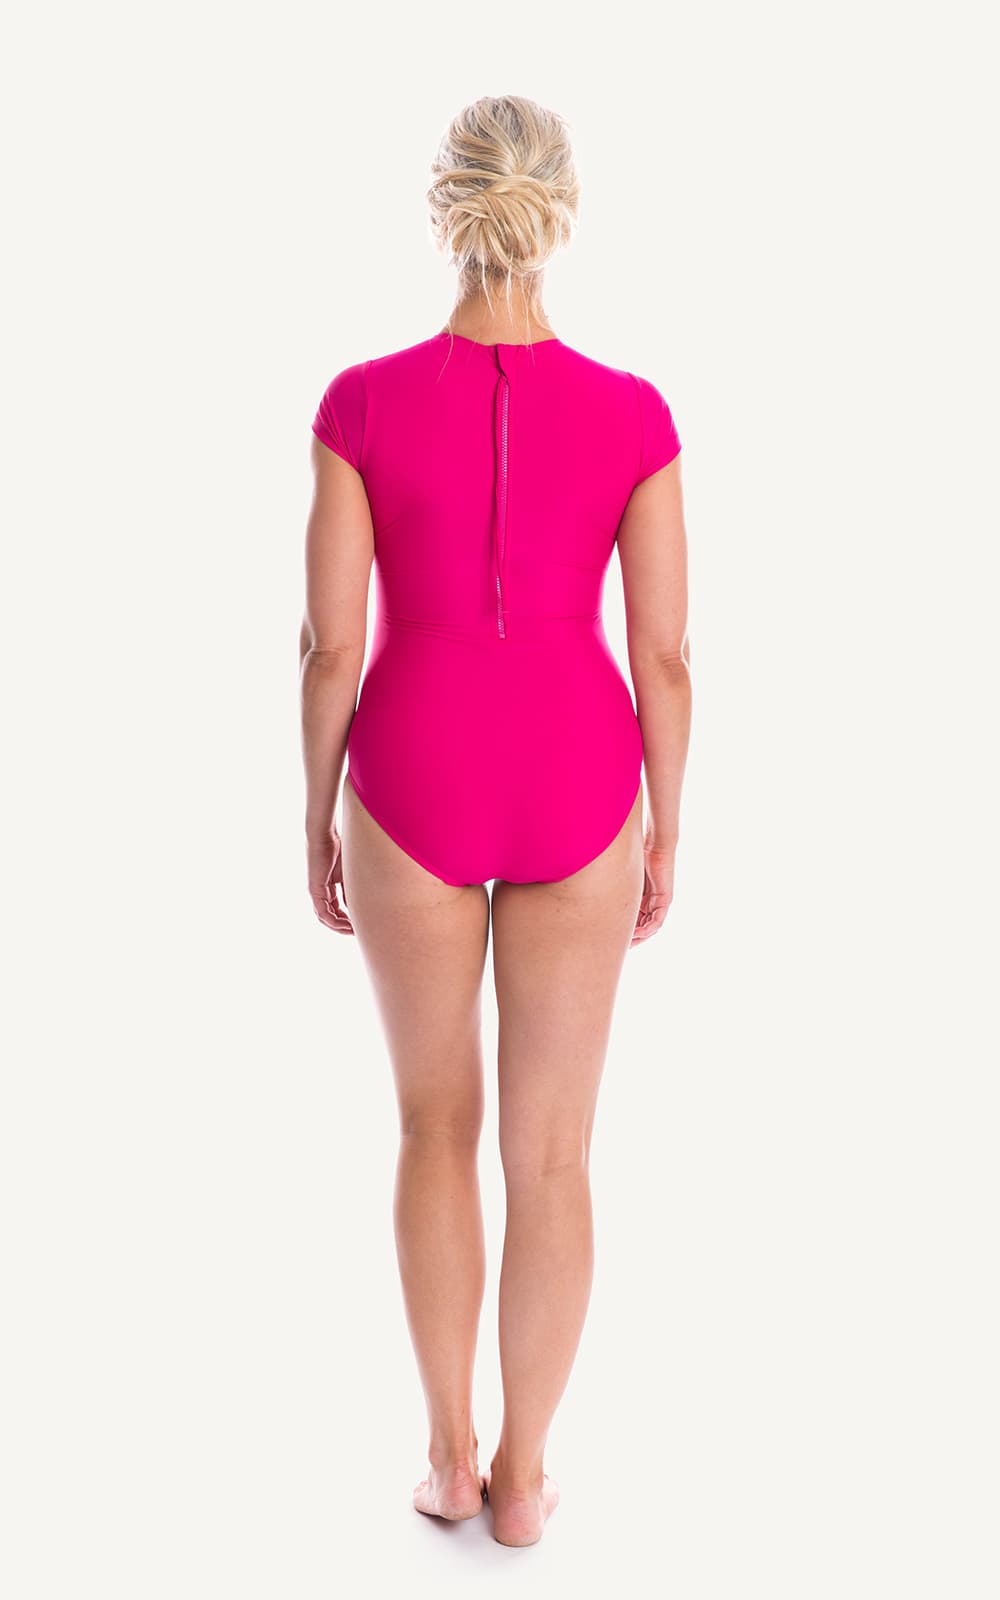 Cap Sleeve Pink One piece Sun Protection Bra Bust Support Cup Sizes Tummy Moulded Zip Swim Swimsuit Swimwear Swimming Beachwear Women